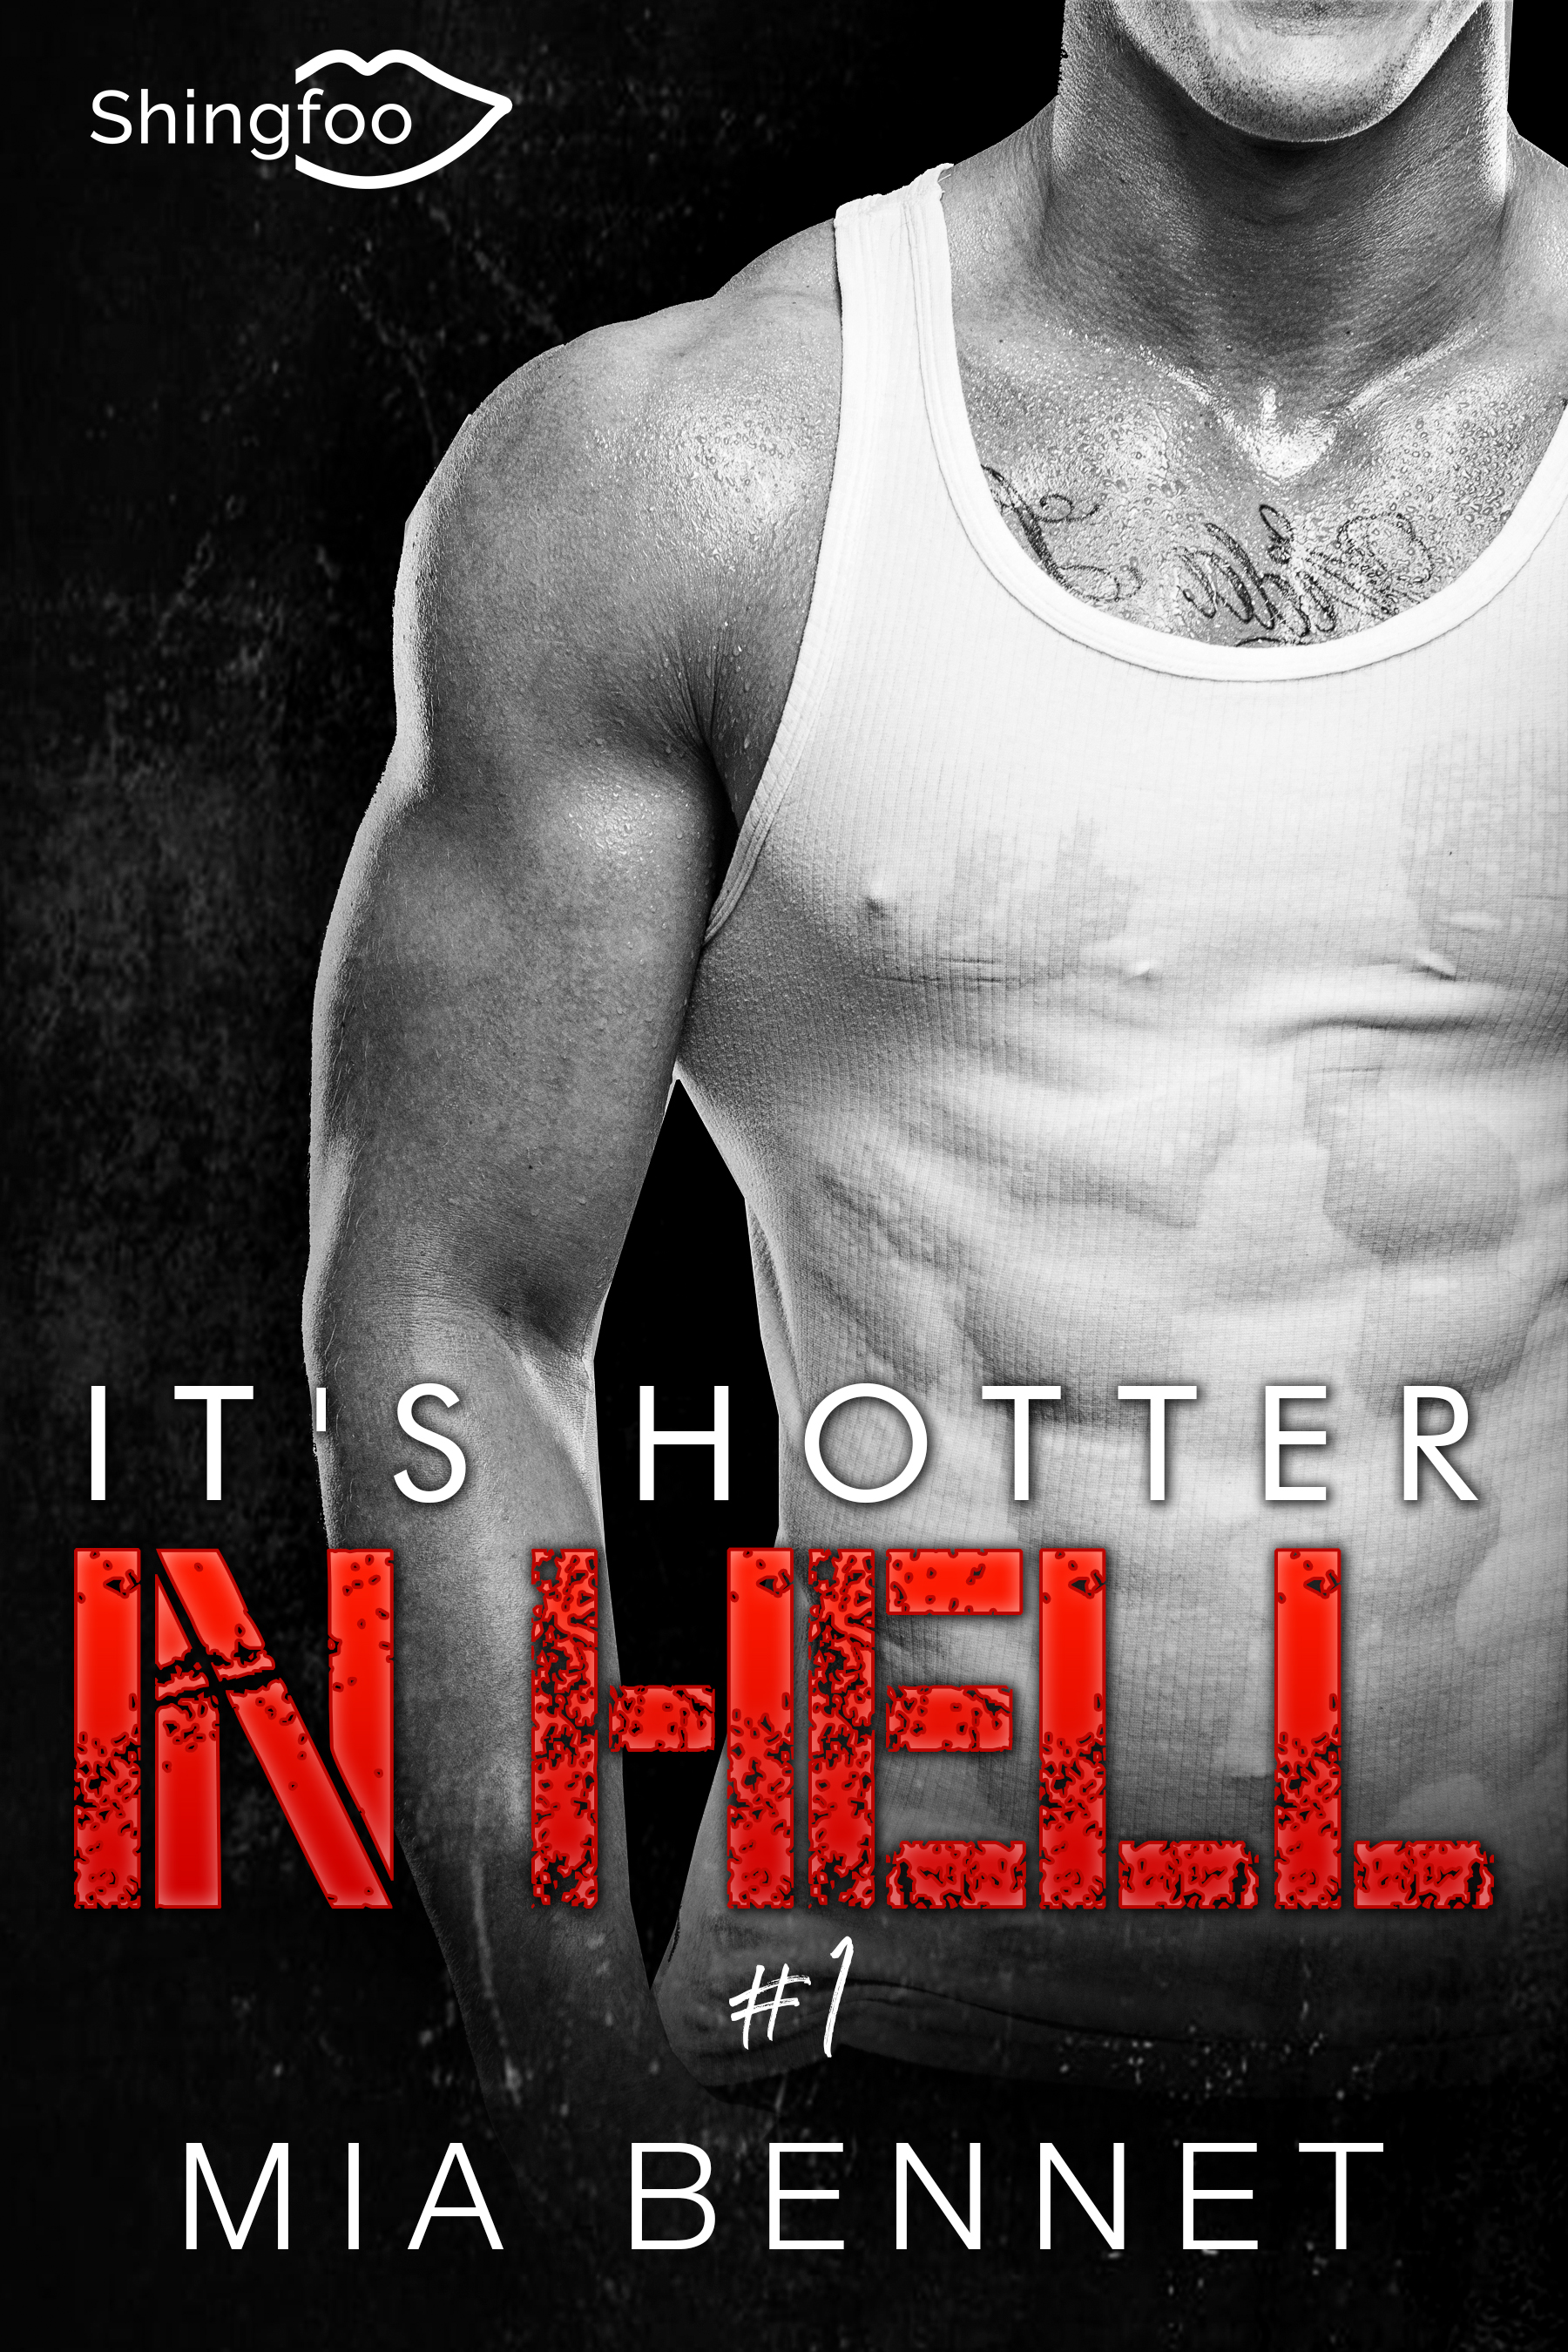 It's hotter in hell (Teaser)